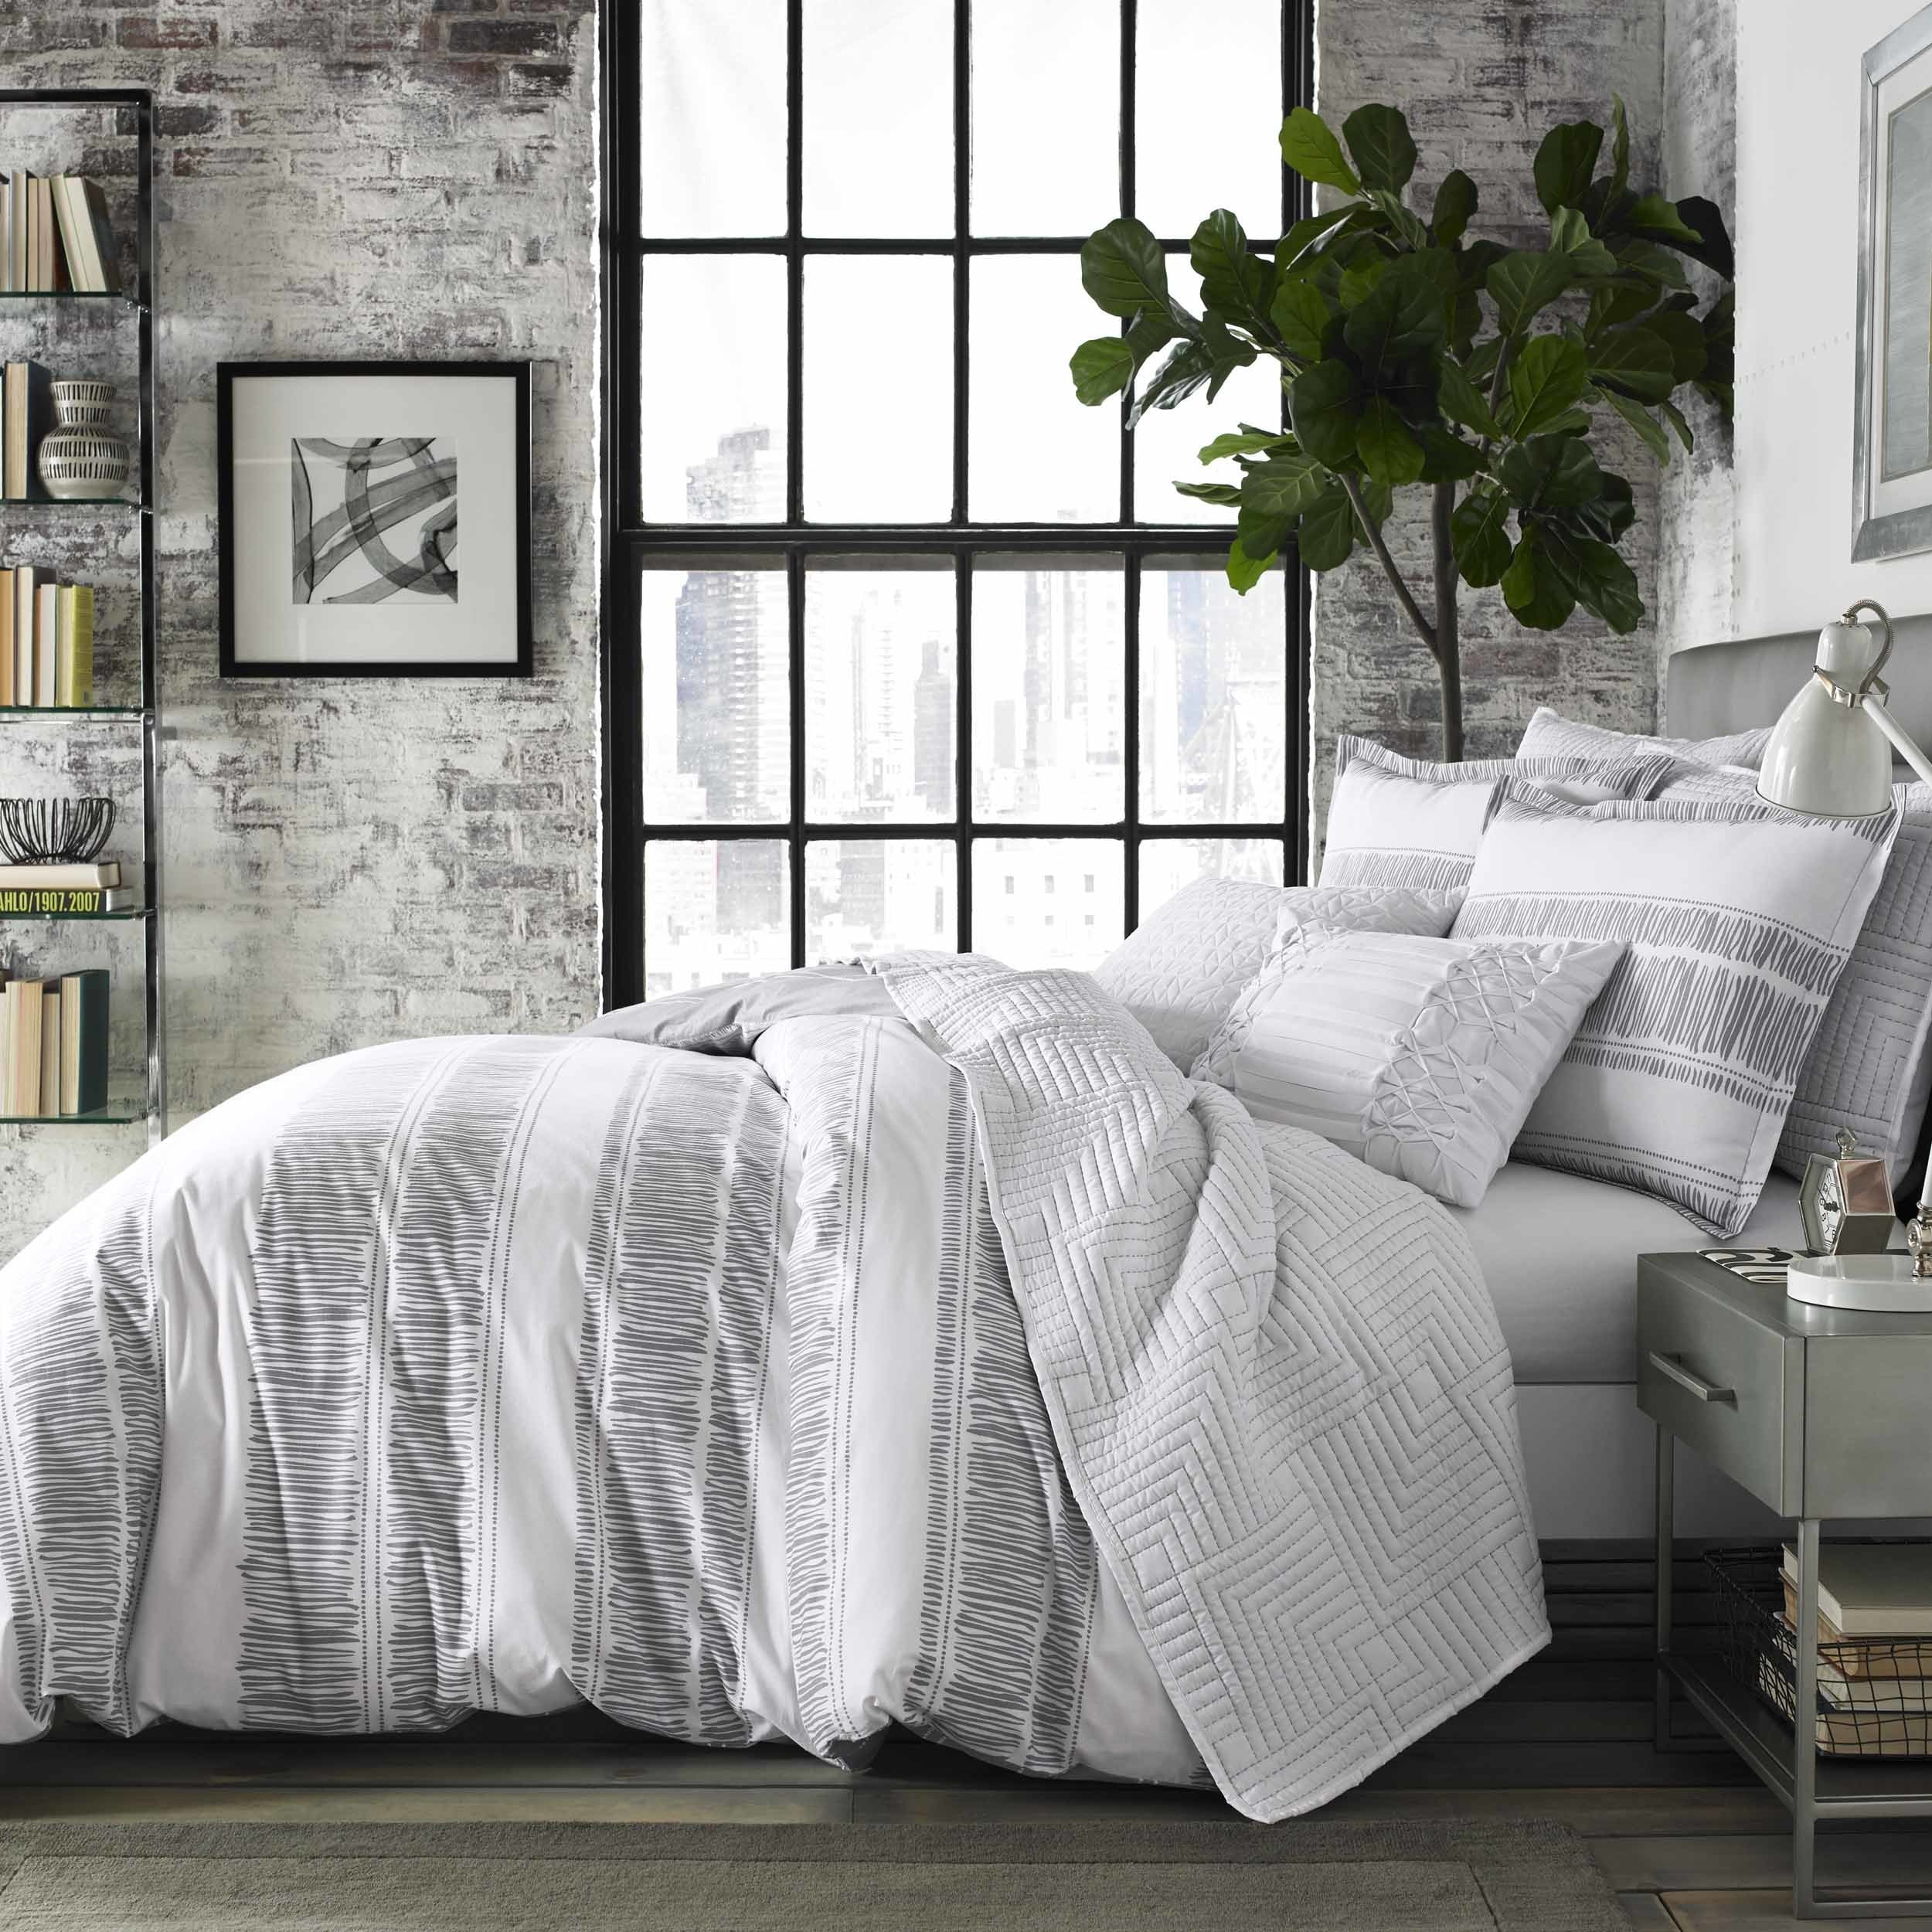 down bed queen comforter dp microfiber amazon full bedding elle home overstock com pinstripe kitchen